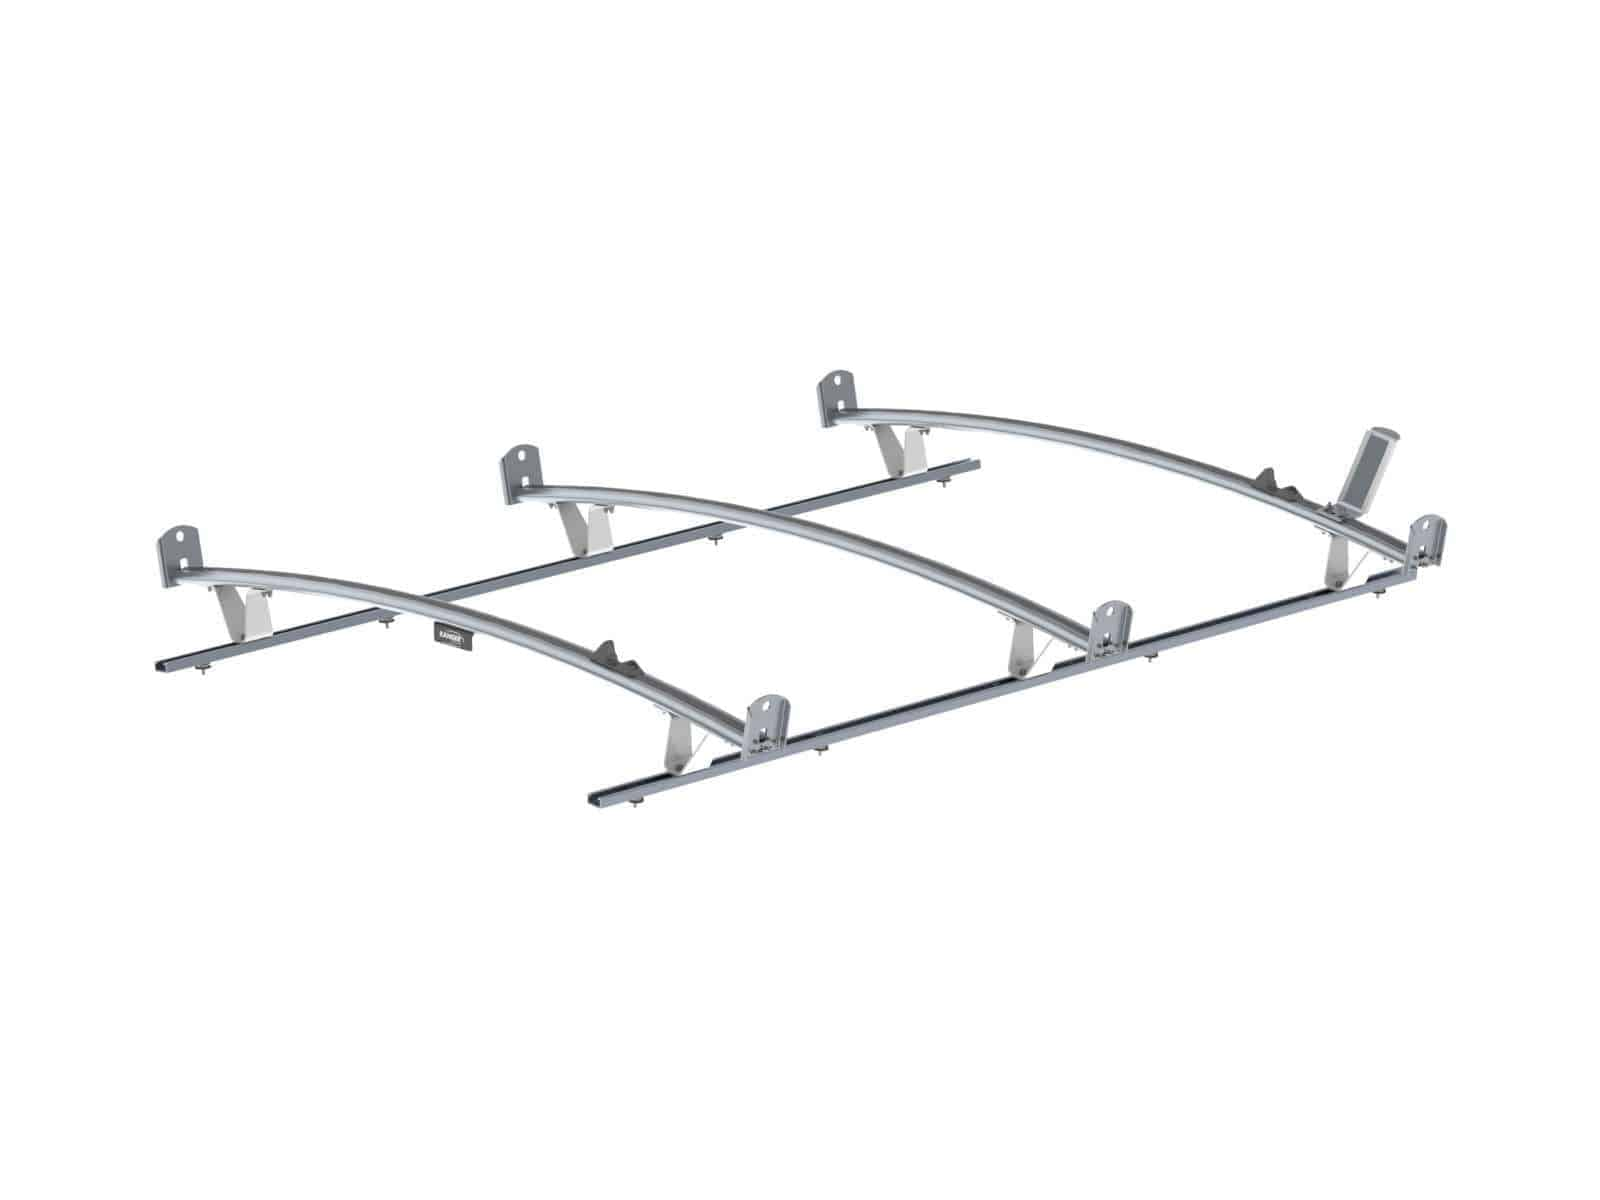 Standard Ladder Rack For Ford Transit 3 Bar System